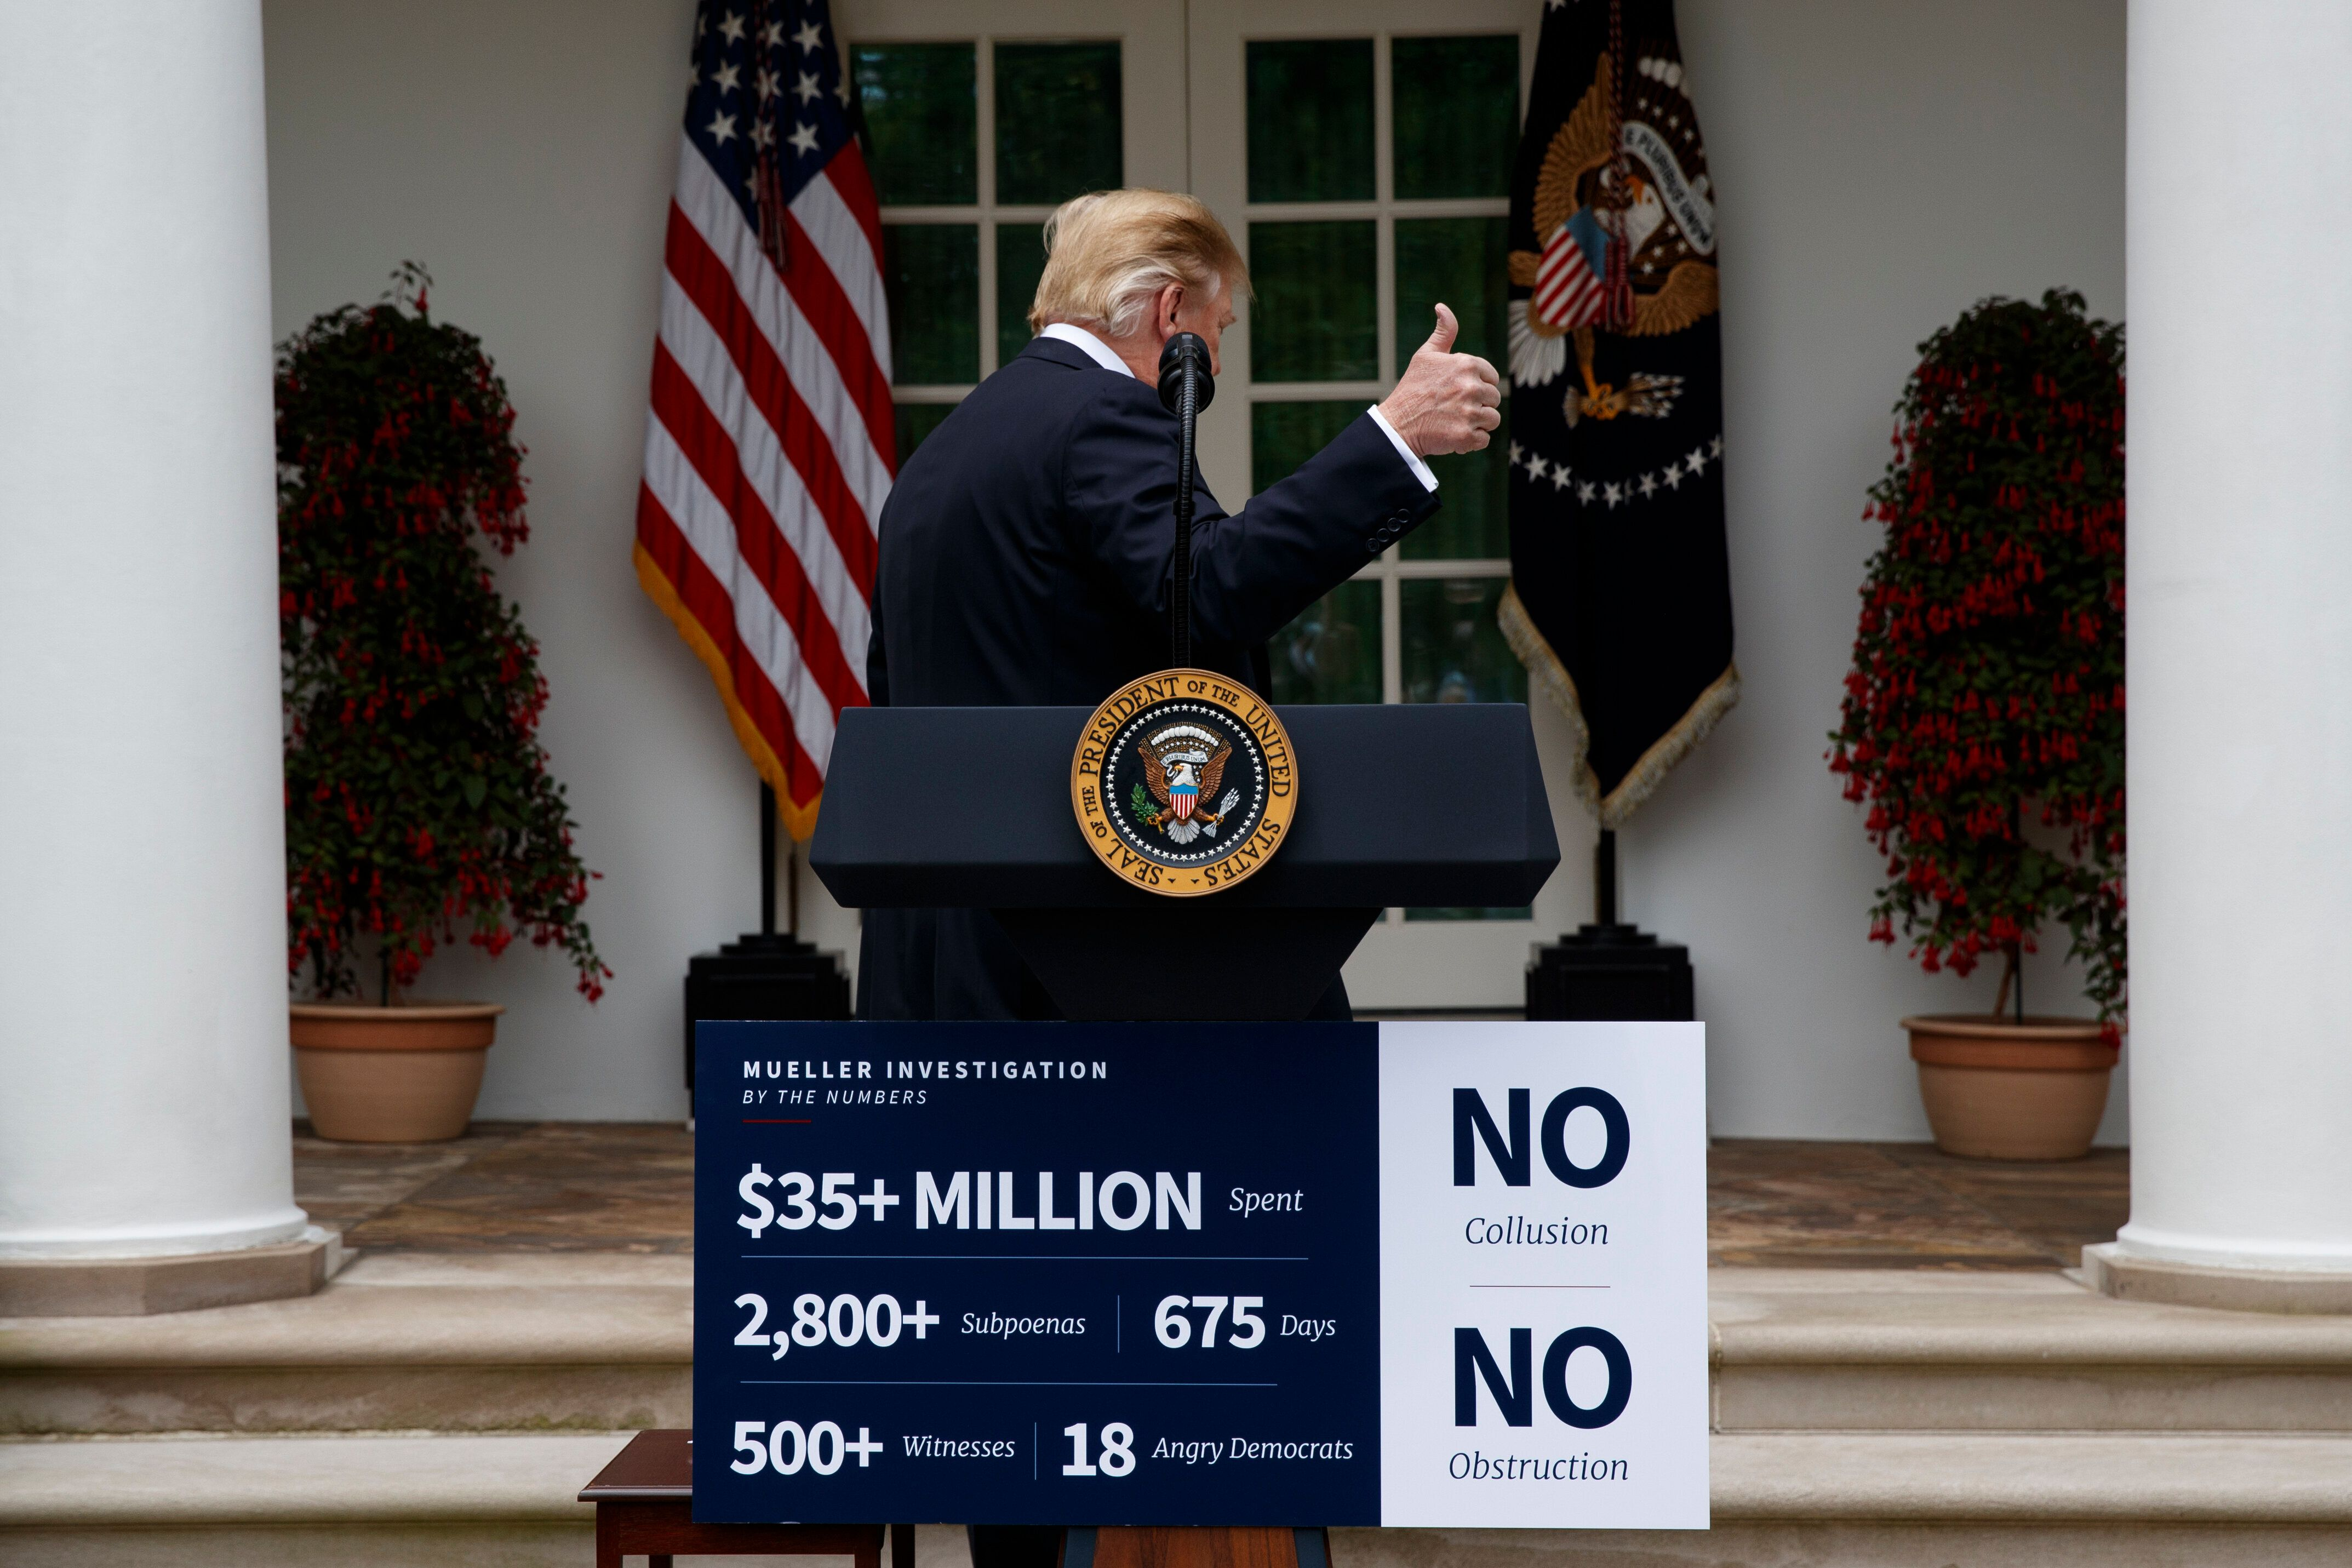 President Donald Trump walks off after delivering a statement in the Rose Garden of the White House, Wednesday, May 22, 2019, in Washington. (AP Photo/Evan Vucci)